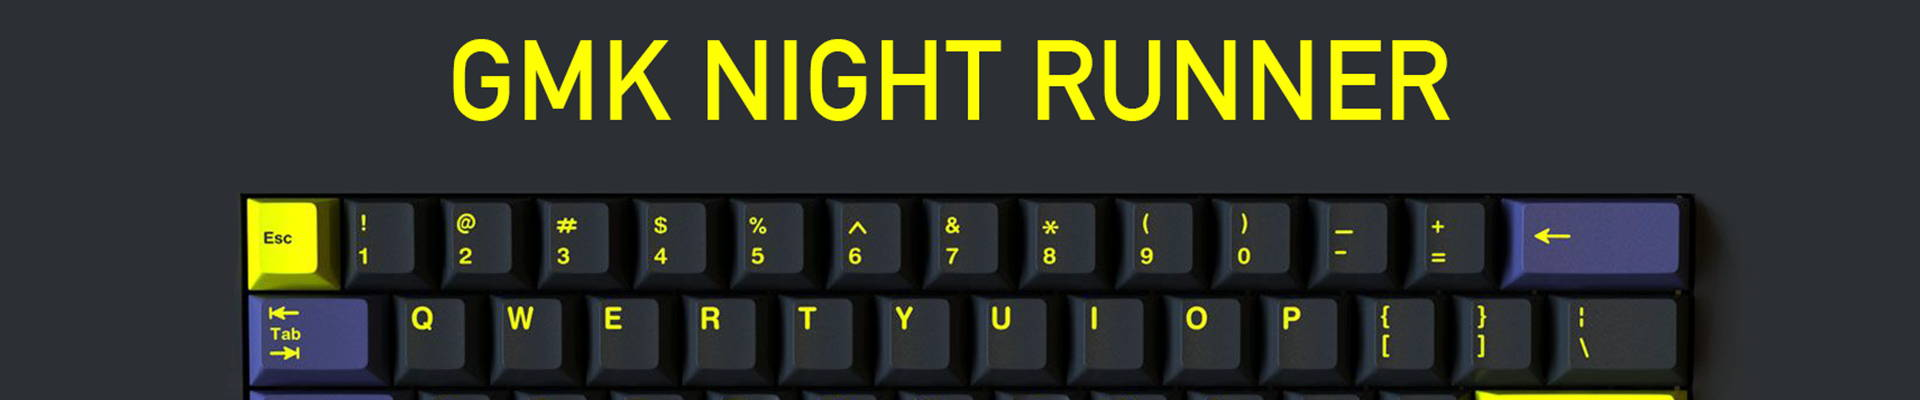 CandyKeys Online Store | Mechanical Keyboards, Keycaps & Components